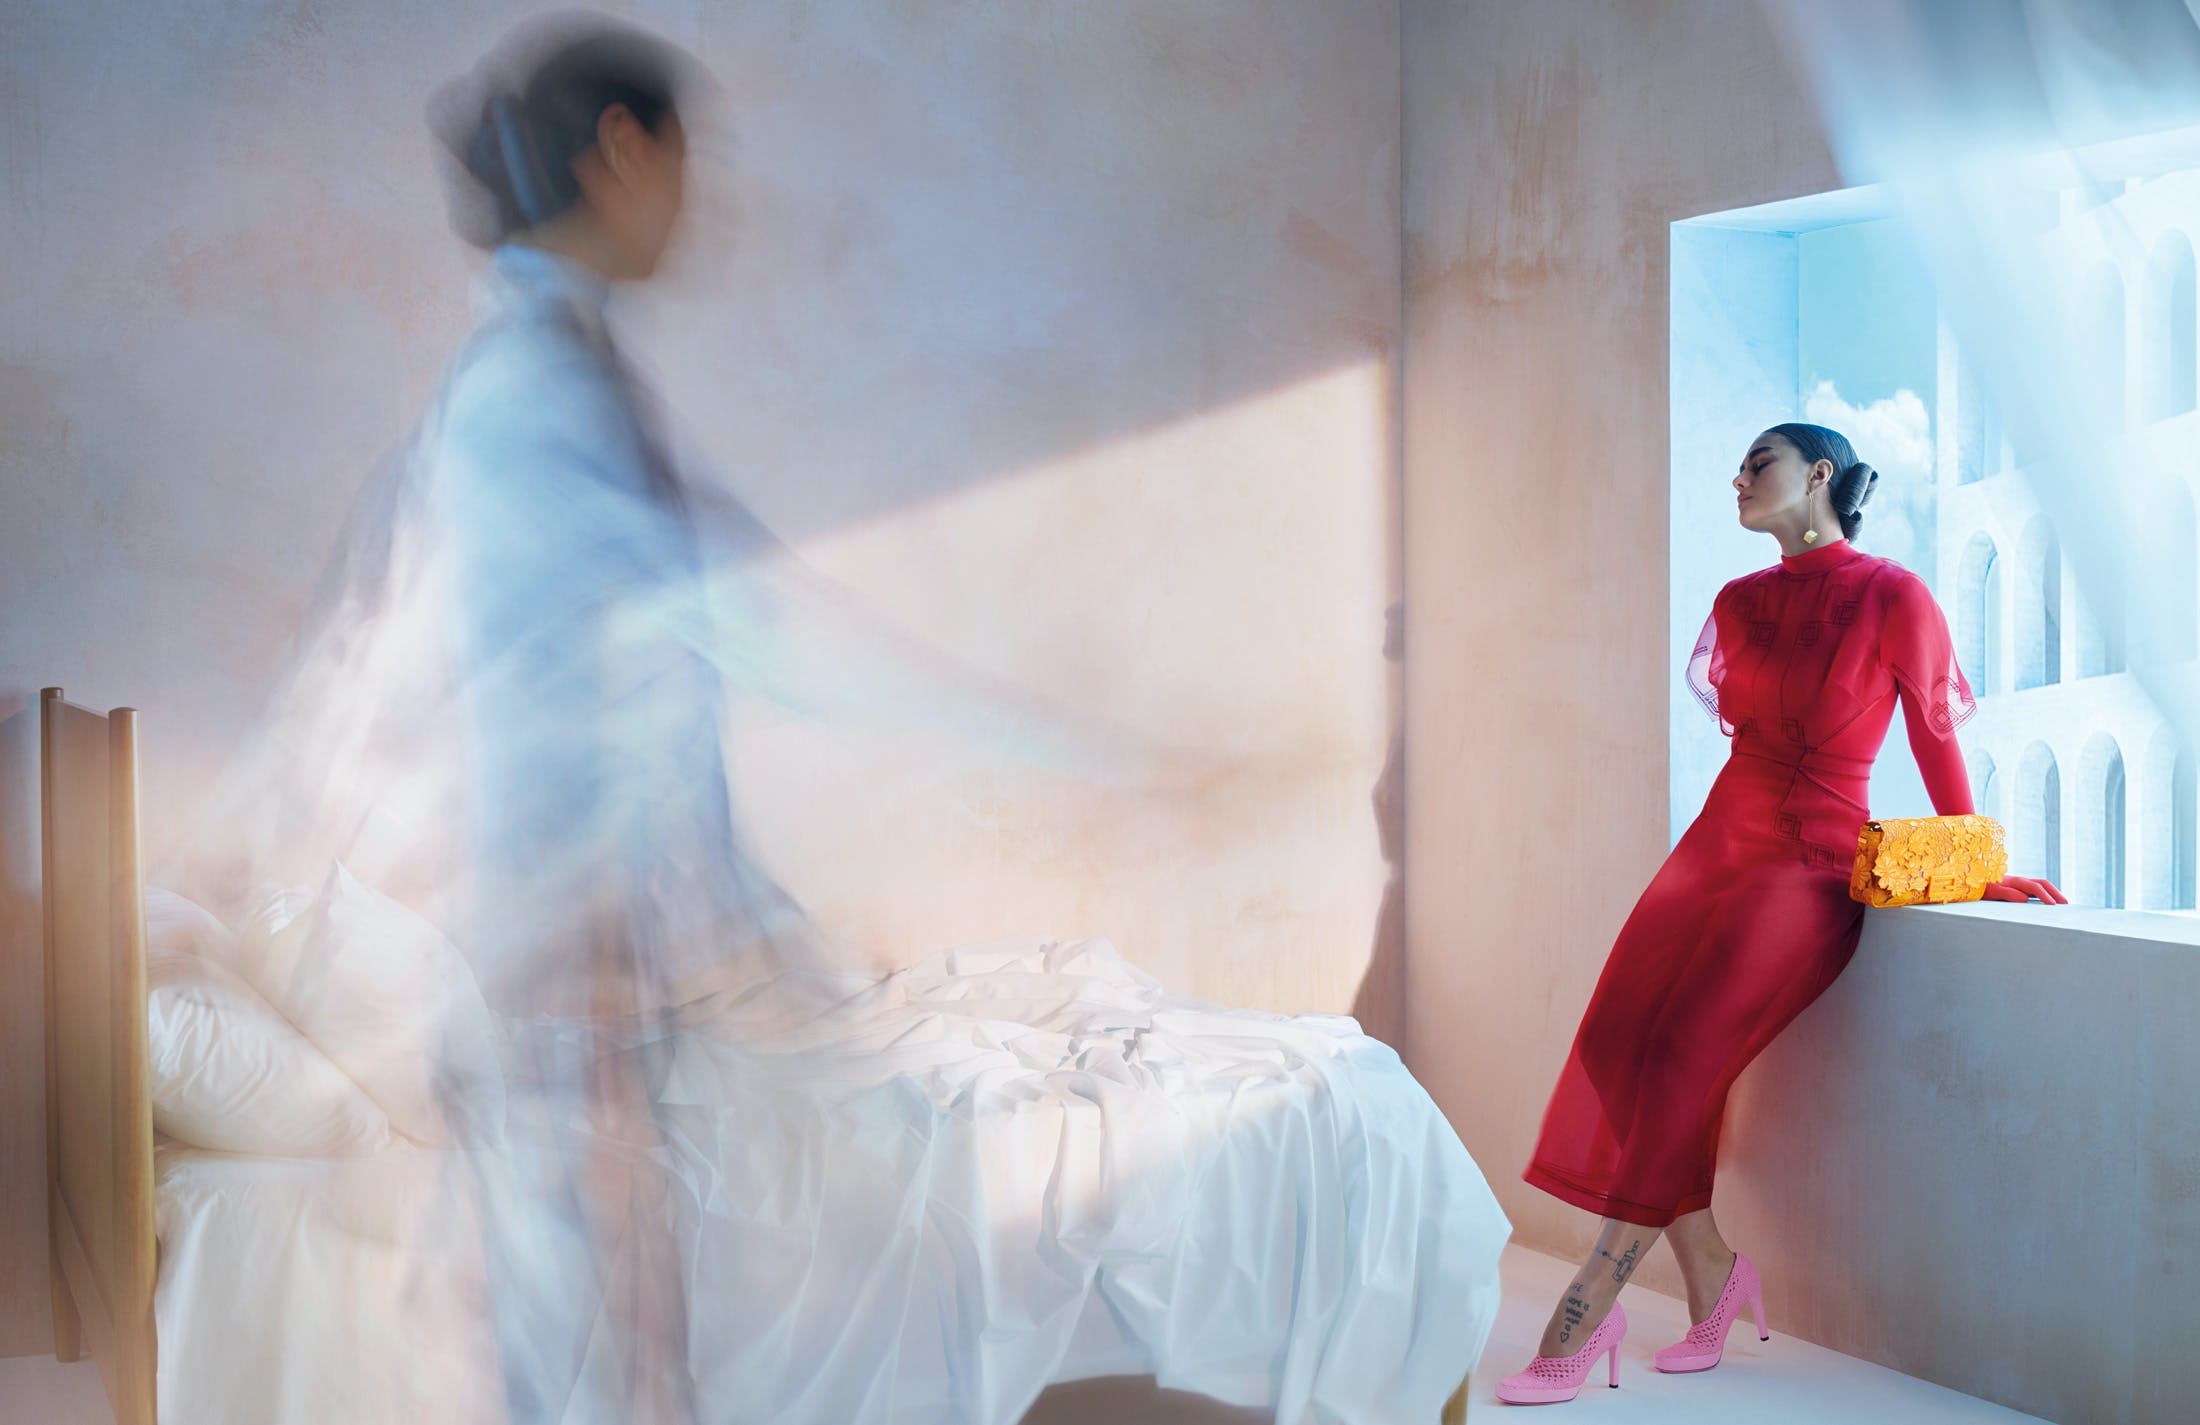 FENDI SPRING 2021 AD CAMPAIGN BY NICK KNIGHT